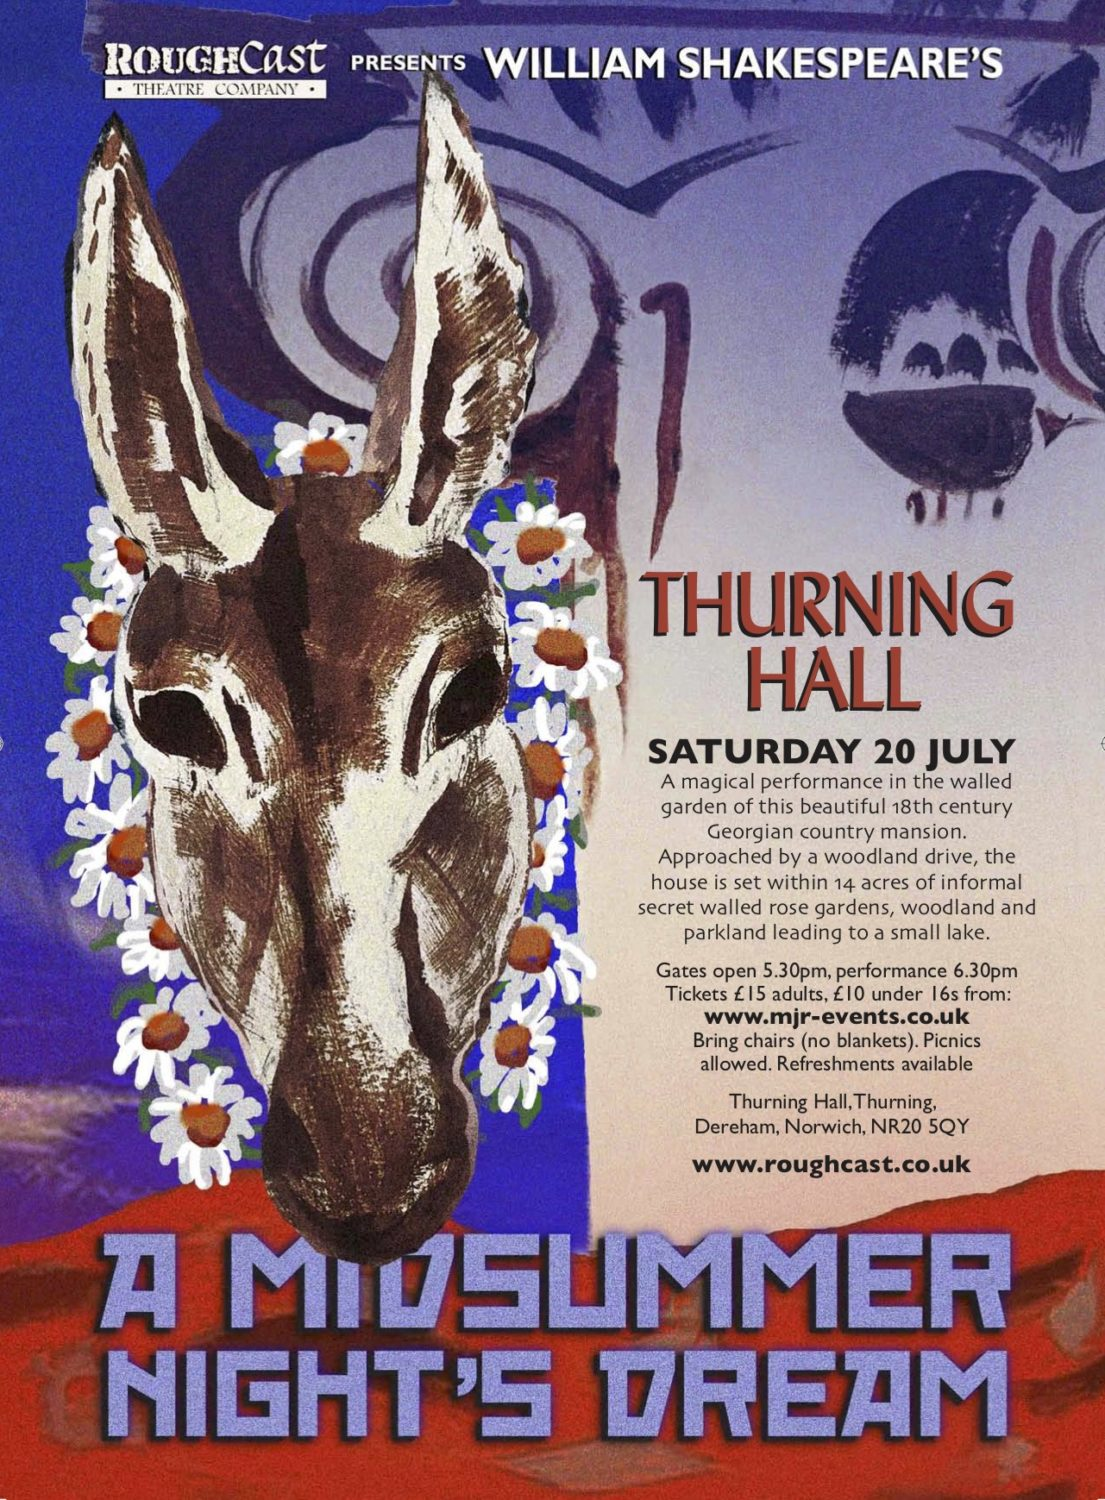 A Midsummer Night's Dream | Shakespeare's A Midsummer Night's Dream will be performed in the dreamy walled garden at Thurning Hall on Saturday 20th July 2019. - Dalegate Market | Shopping & Café, Burnham Deepdale, North Norfolk Coast, England, UK